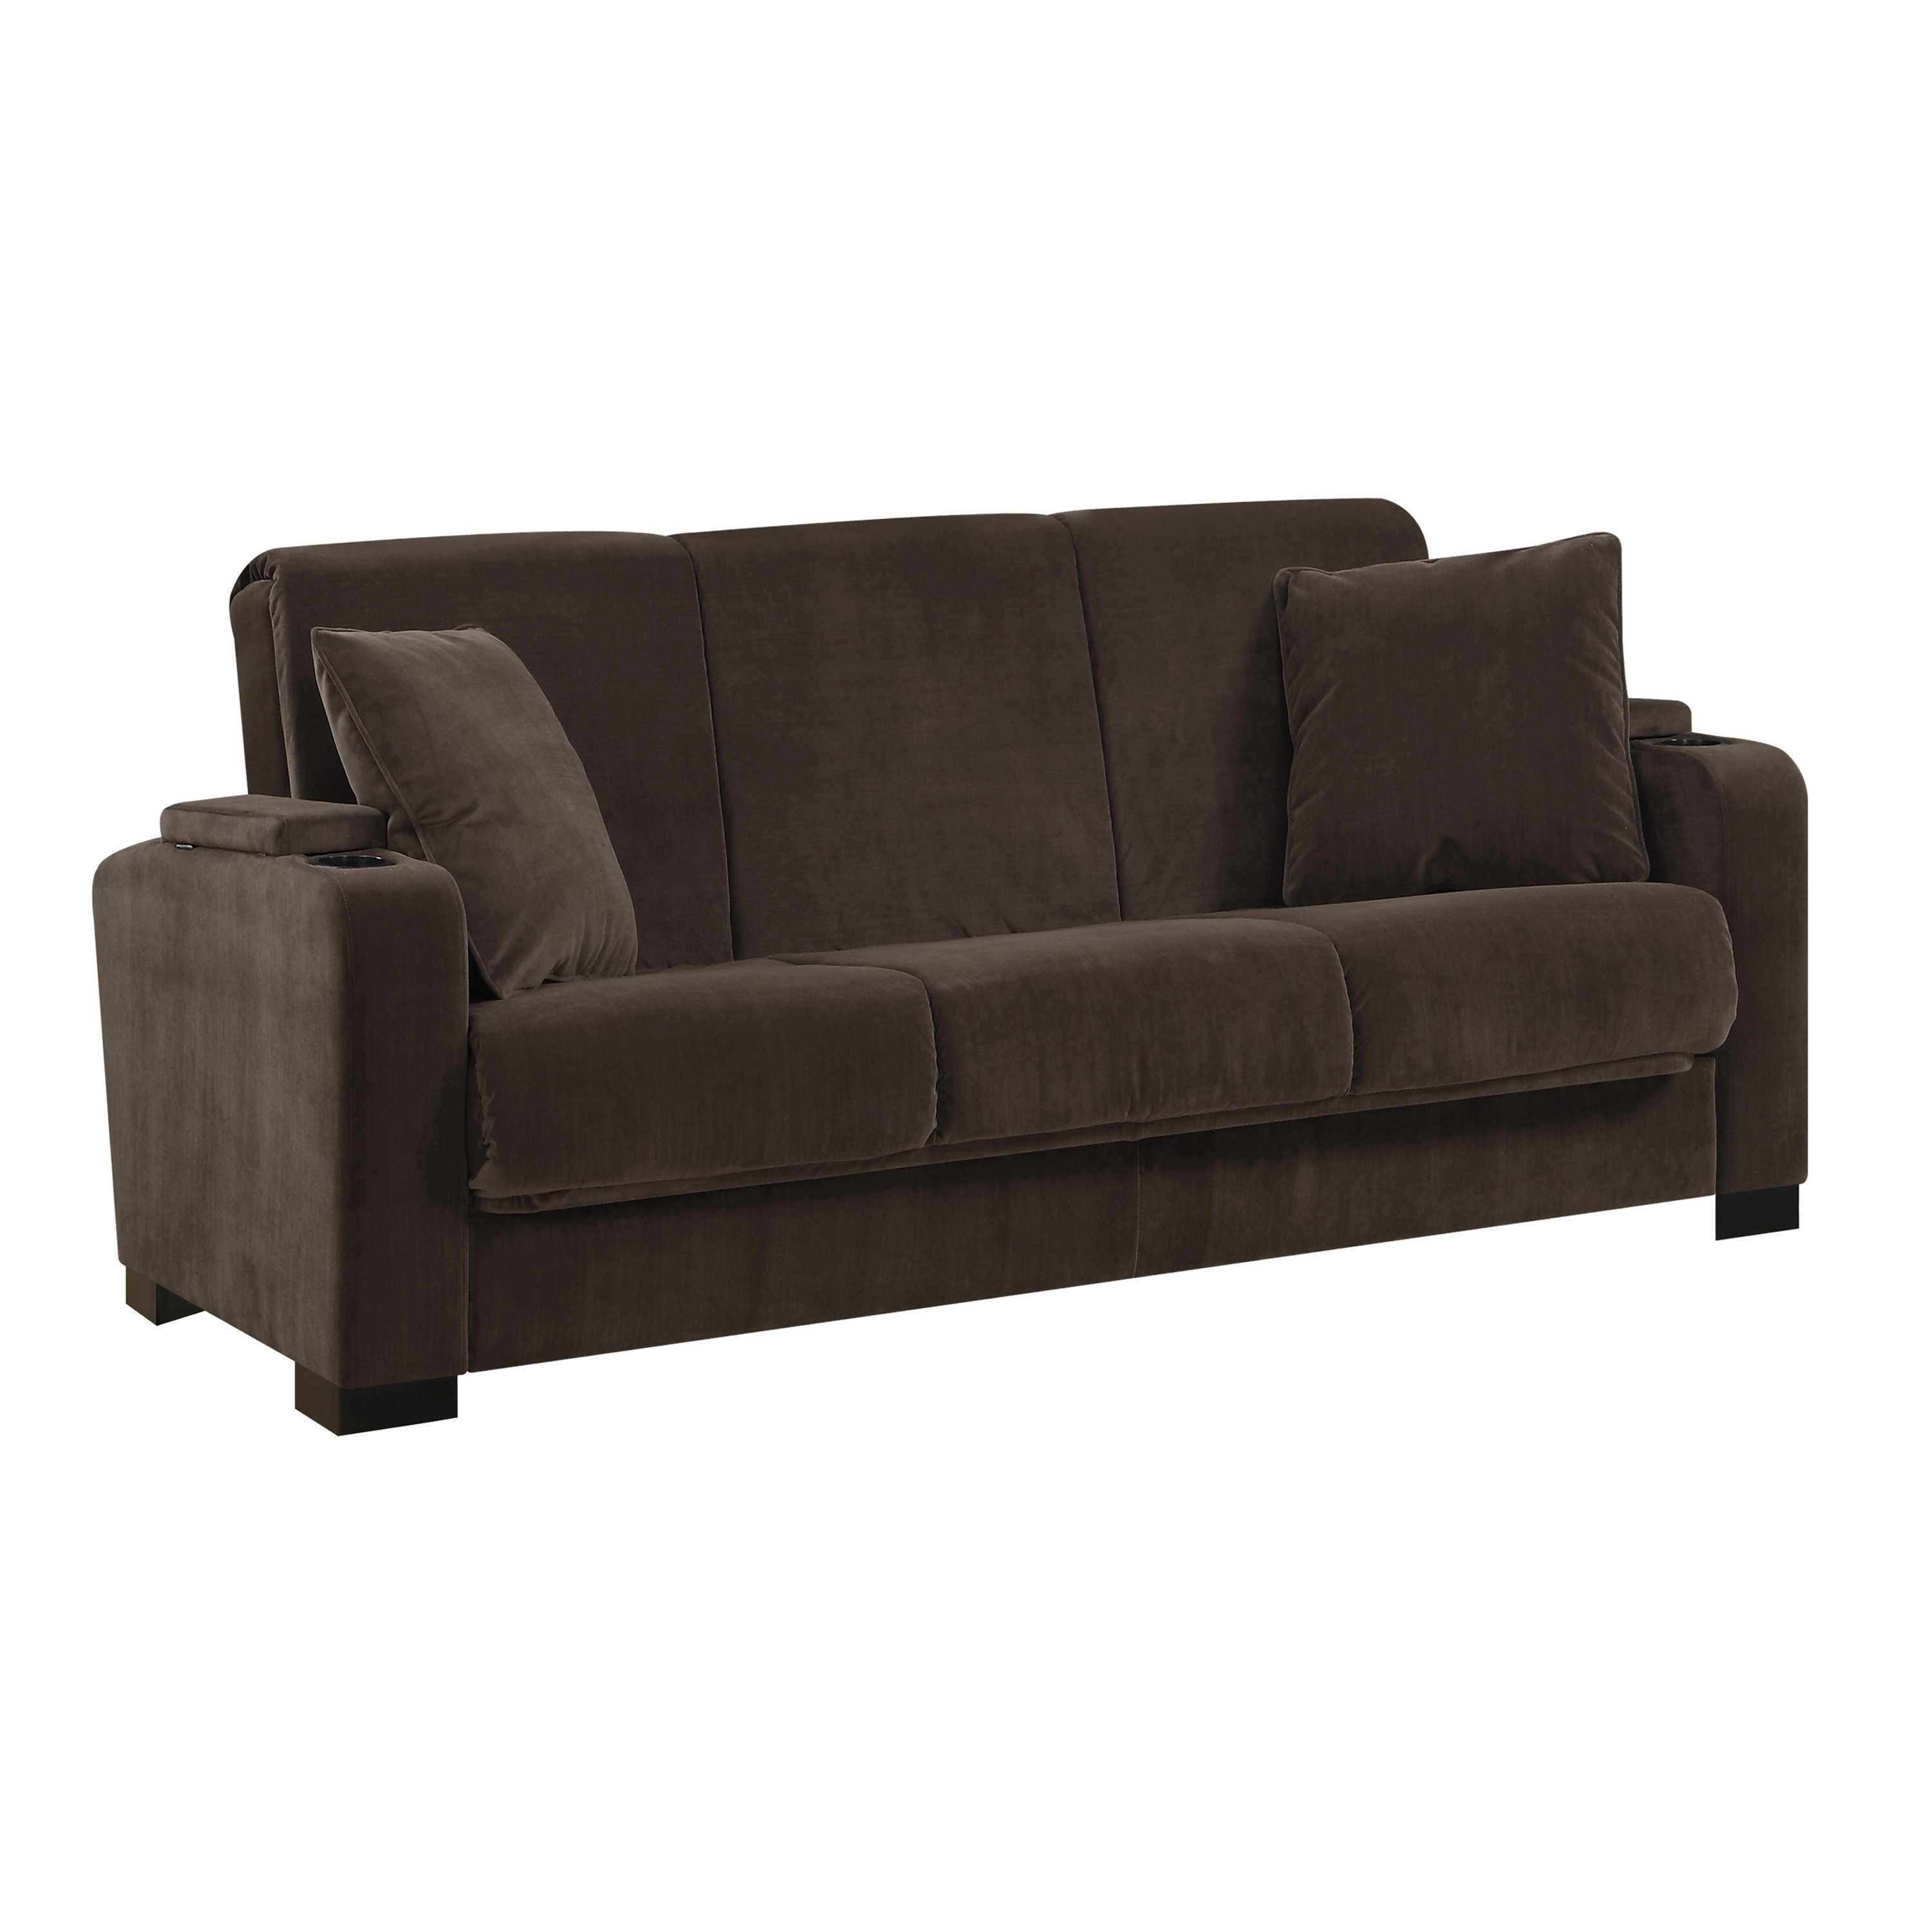 King Size Sleeper Sofas Pertaining To Widely Used Sofas : Fold Out Sofa Sofa Chair Bed Hide A Bed Sofa Twin Sofa Bed (Gallery 15 of 20)